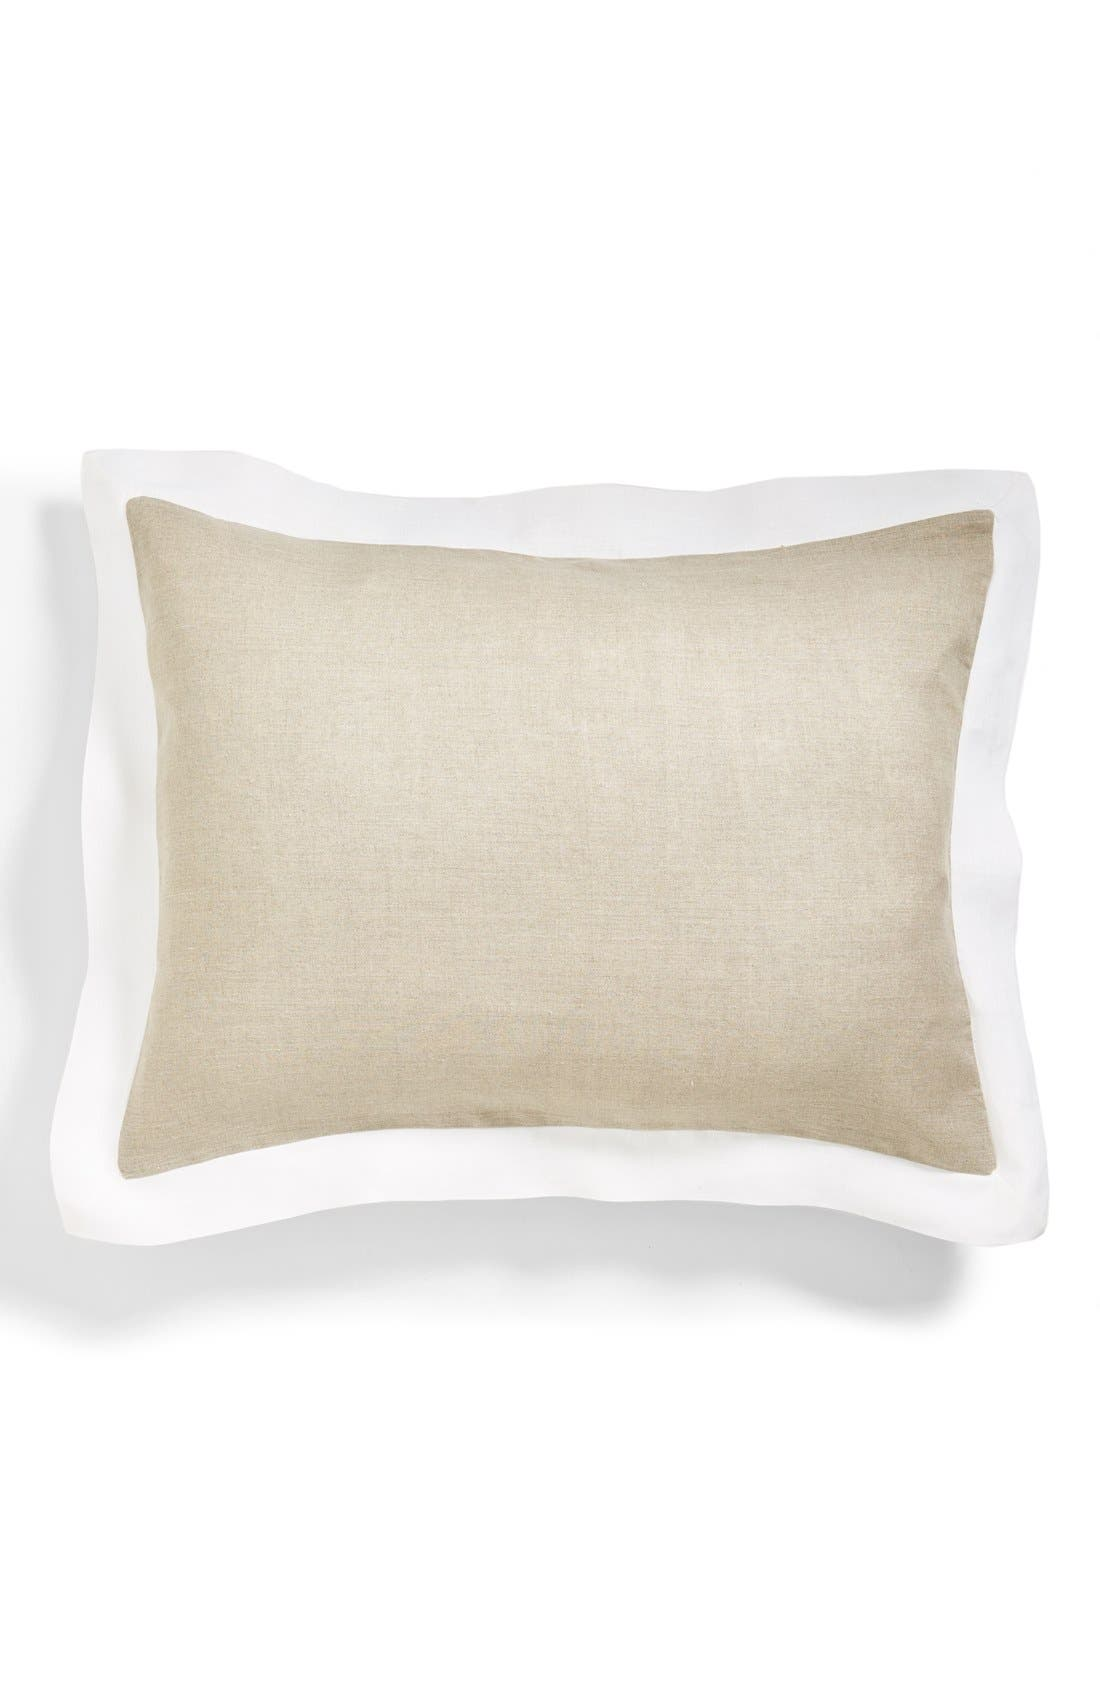 Main Image - Amity Home 'Benedetto' Linen Pillow Sham